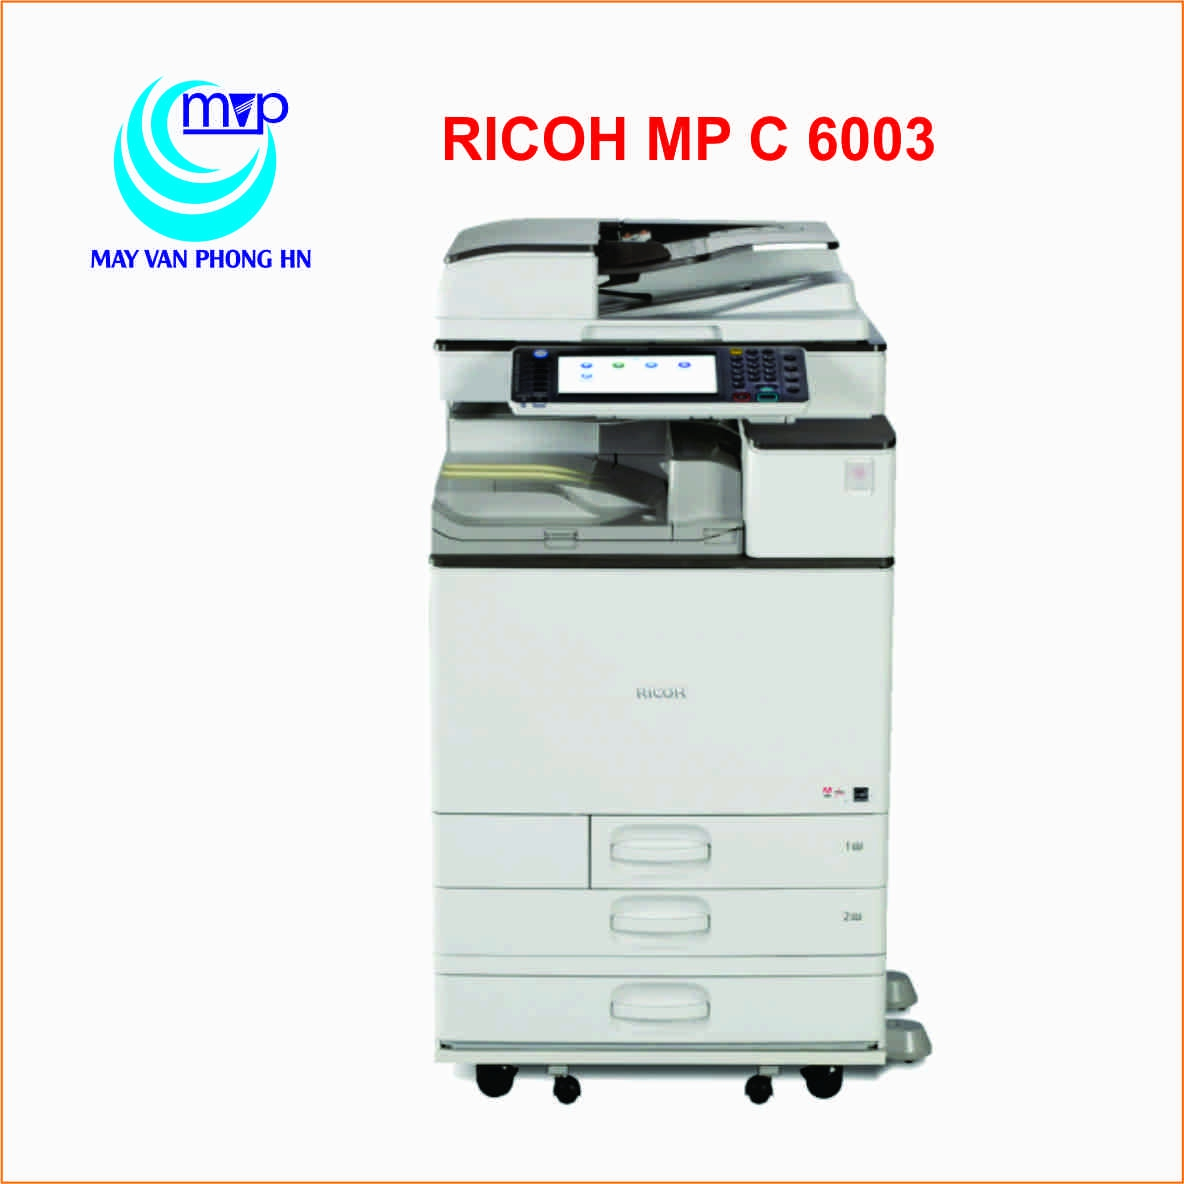 RICOH MP C 6003